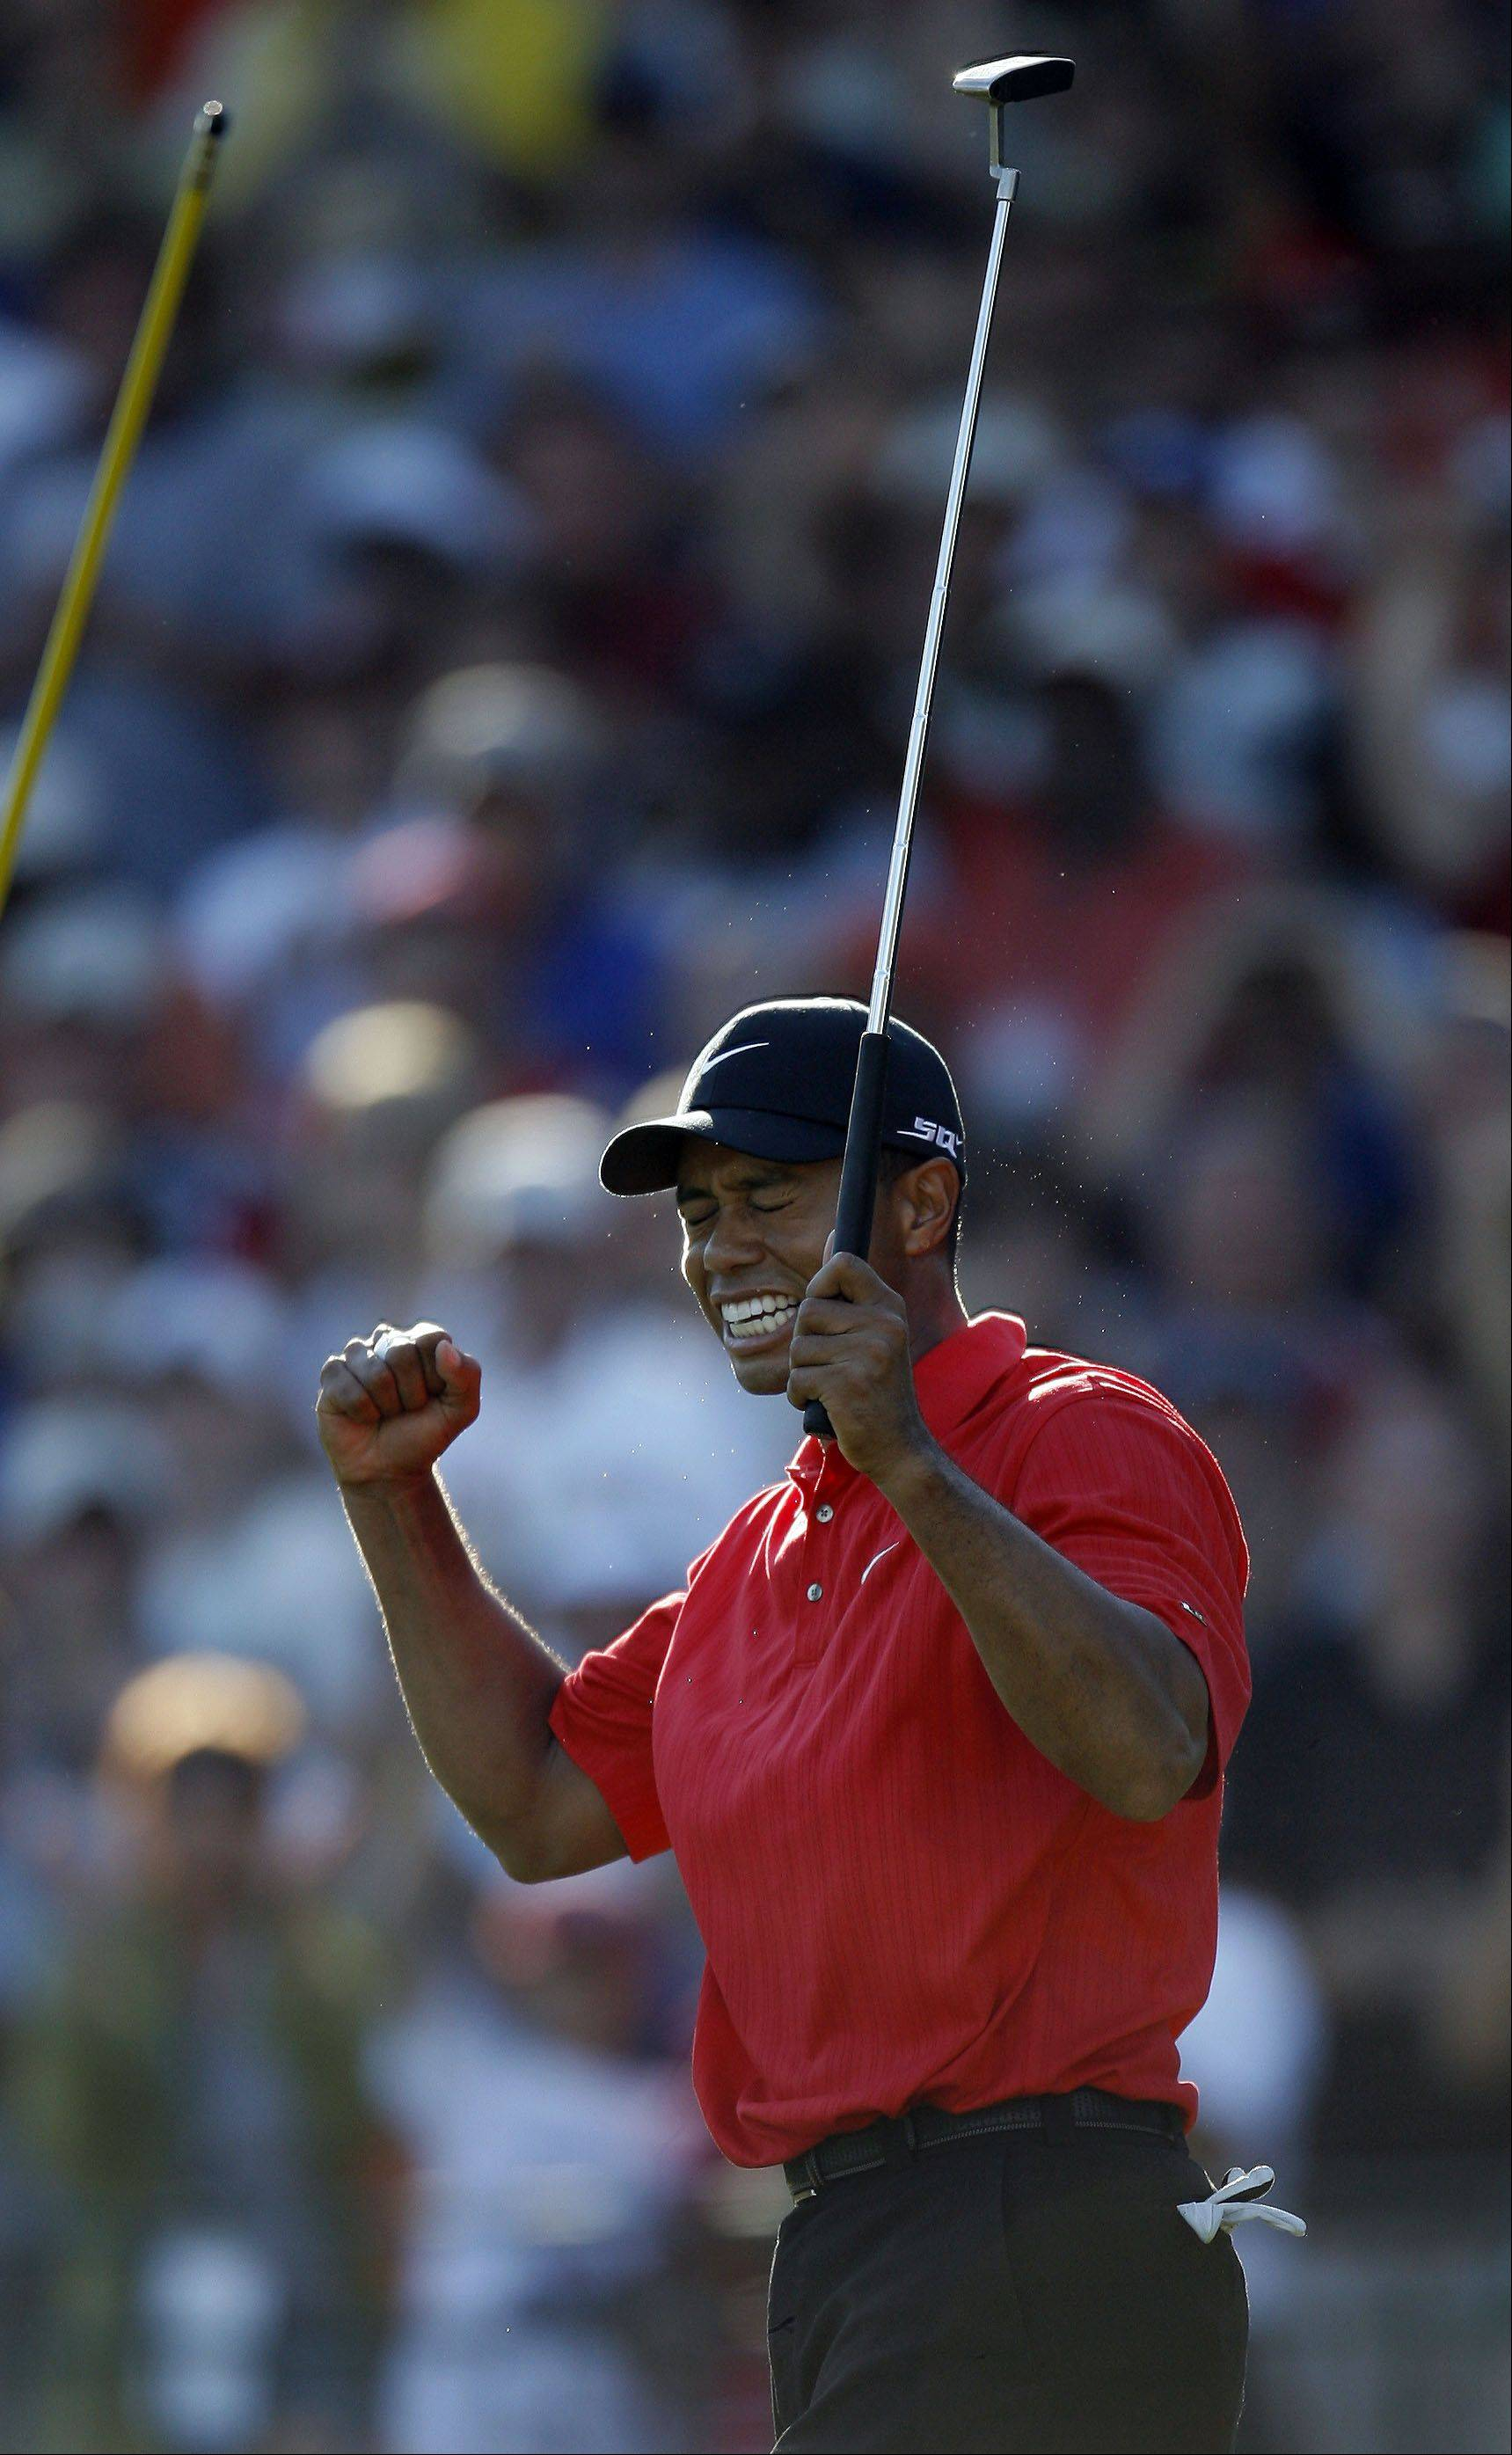 Chicago's rich golfing history includes a memorable win by Tiger Woods at the 88th PGA Championship held at Medinah Country Club in 2006.